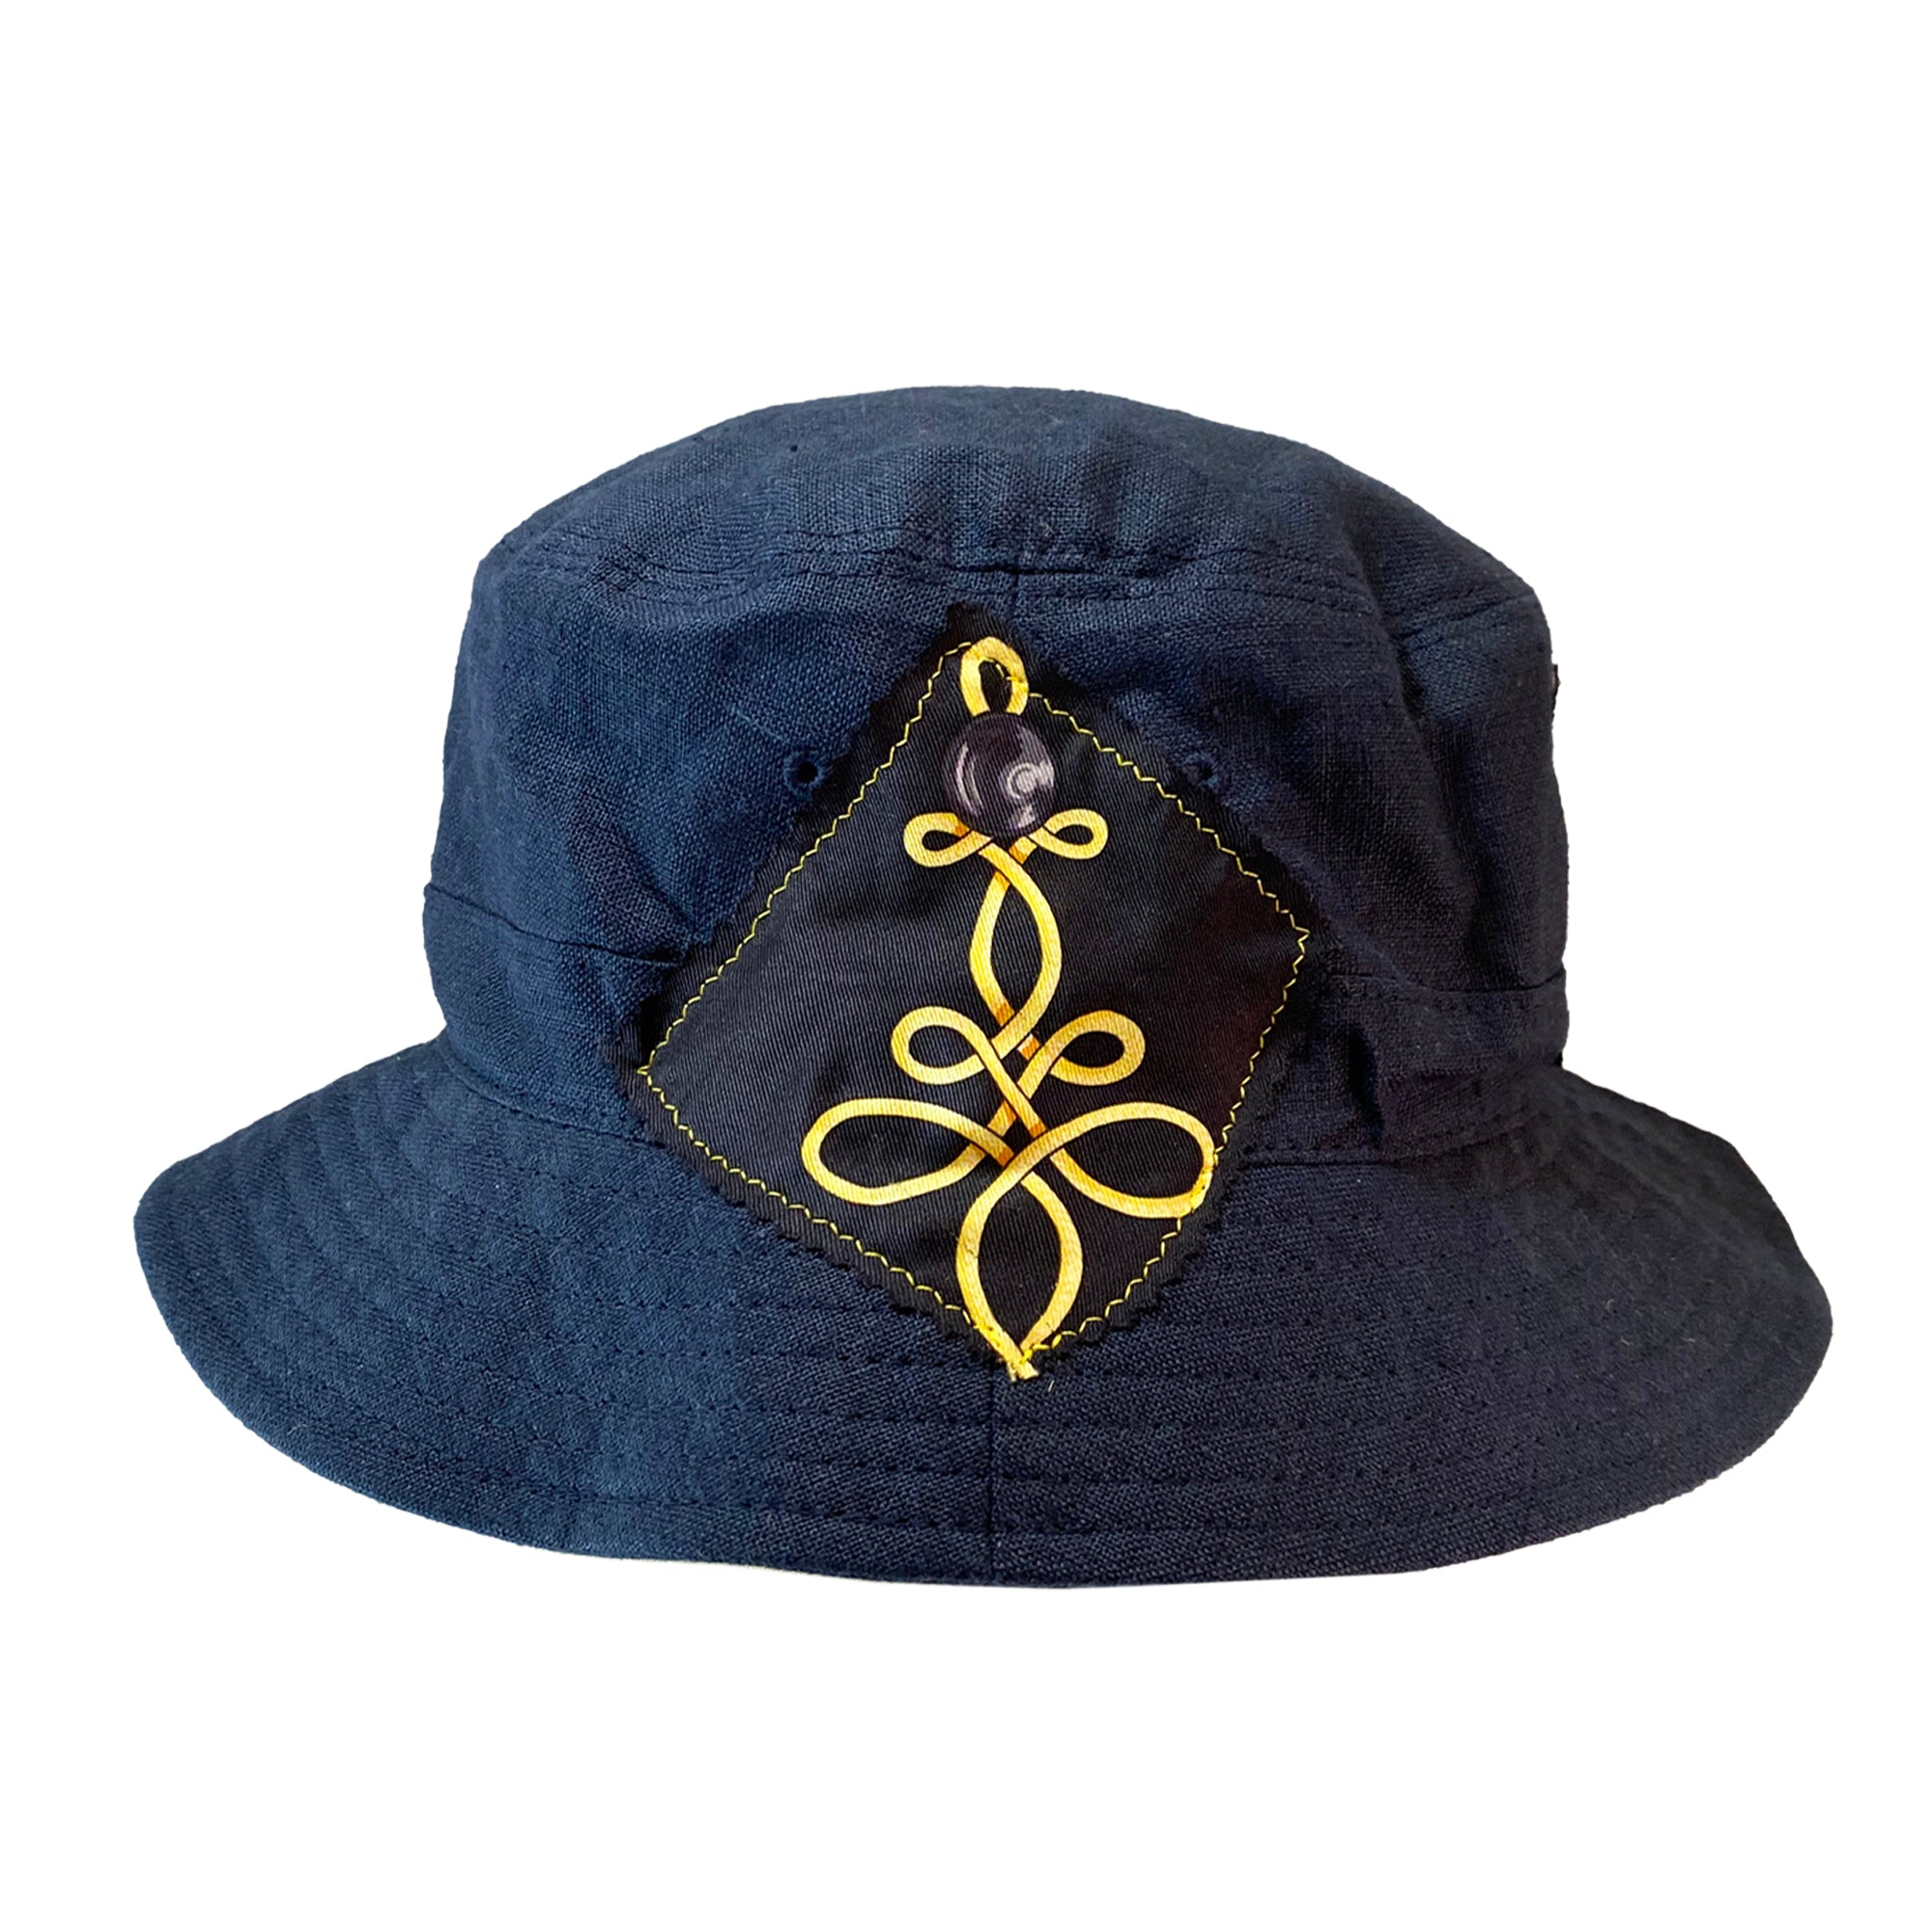 Bucket Hat - Navy Linen with Hermes Silk - XS/S